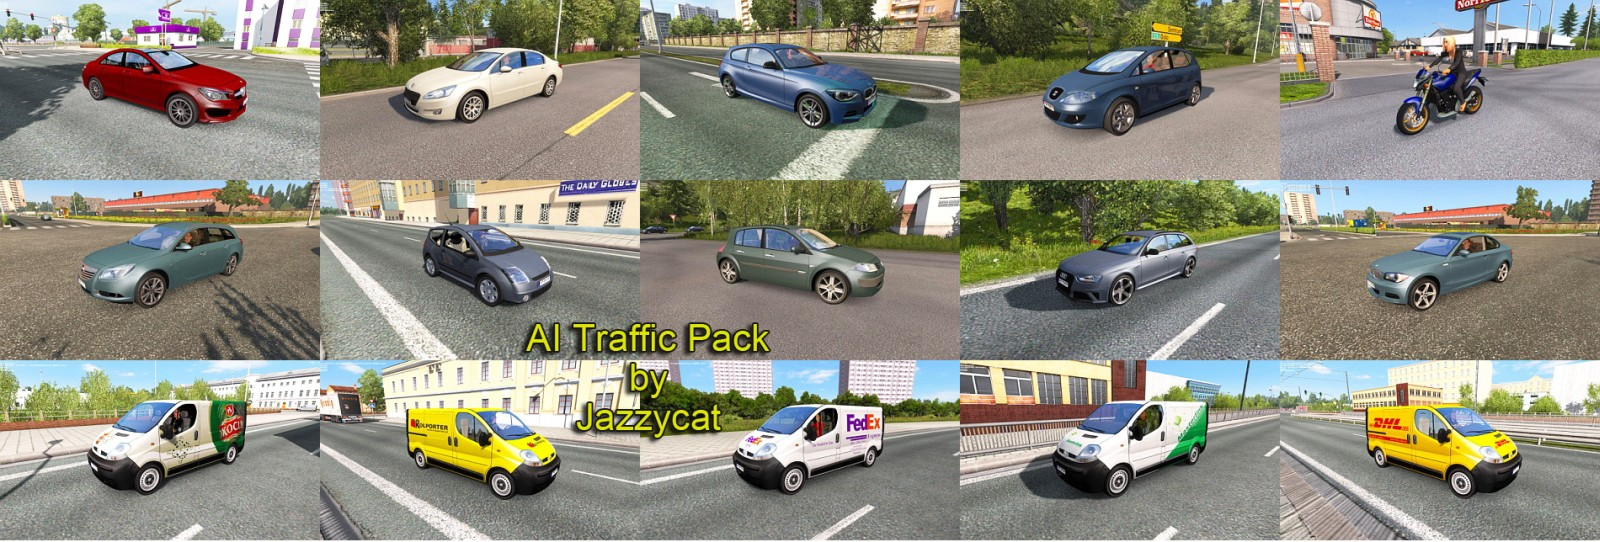 AI Traffic Pack 2.7 by Jazzycat